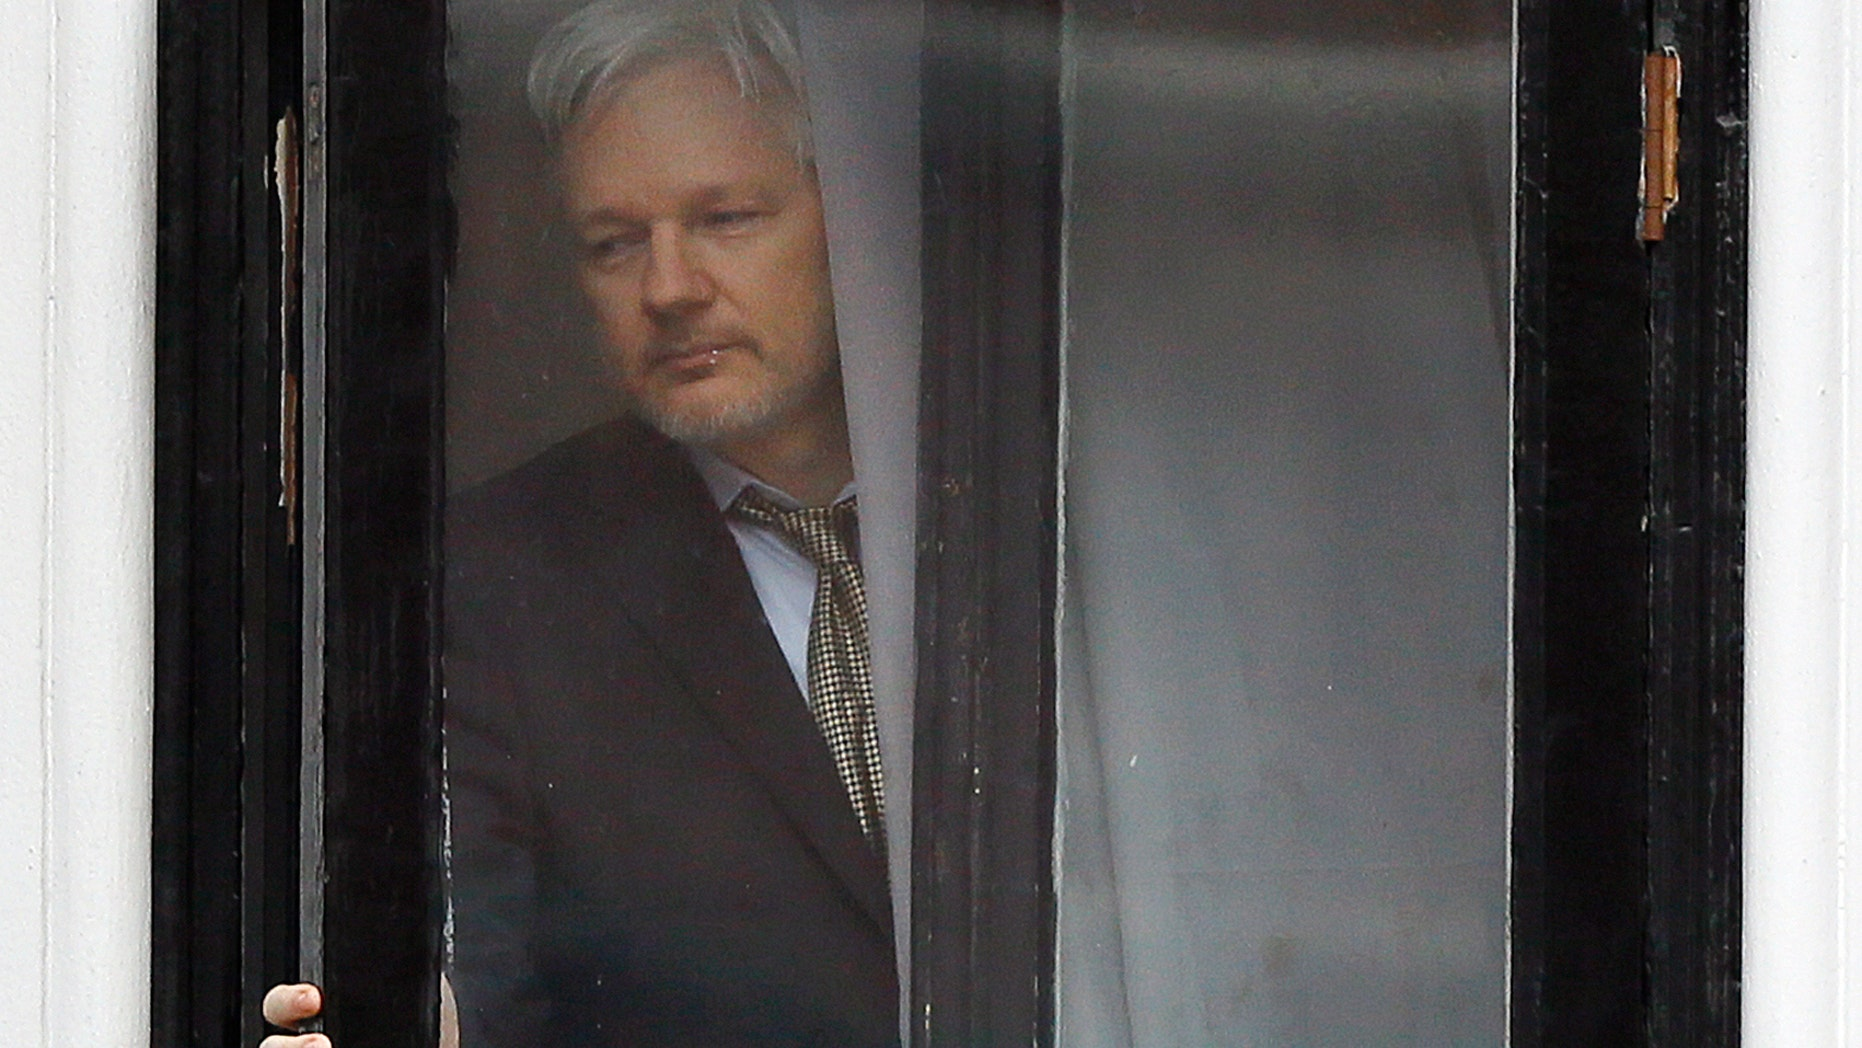 WikiLeaks founder Assange's lawsuit over asylum conditions denied by Ecuador